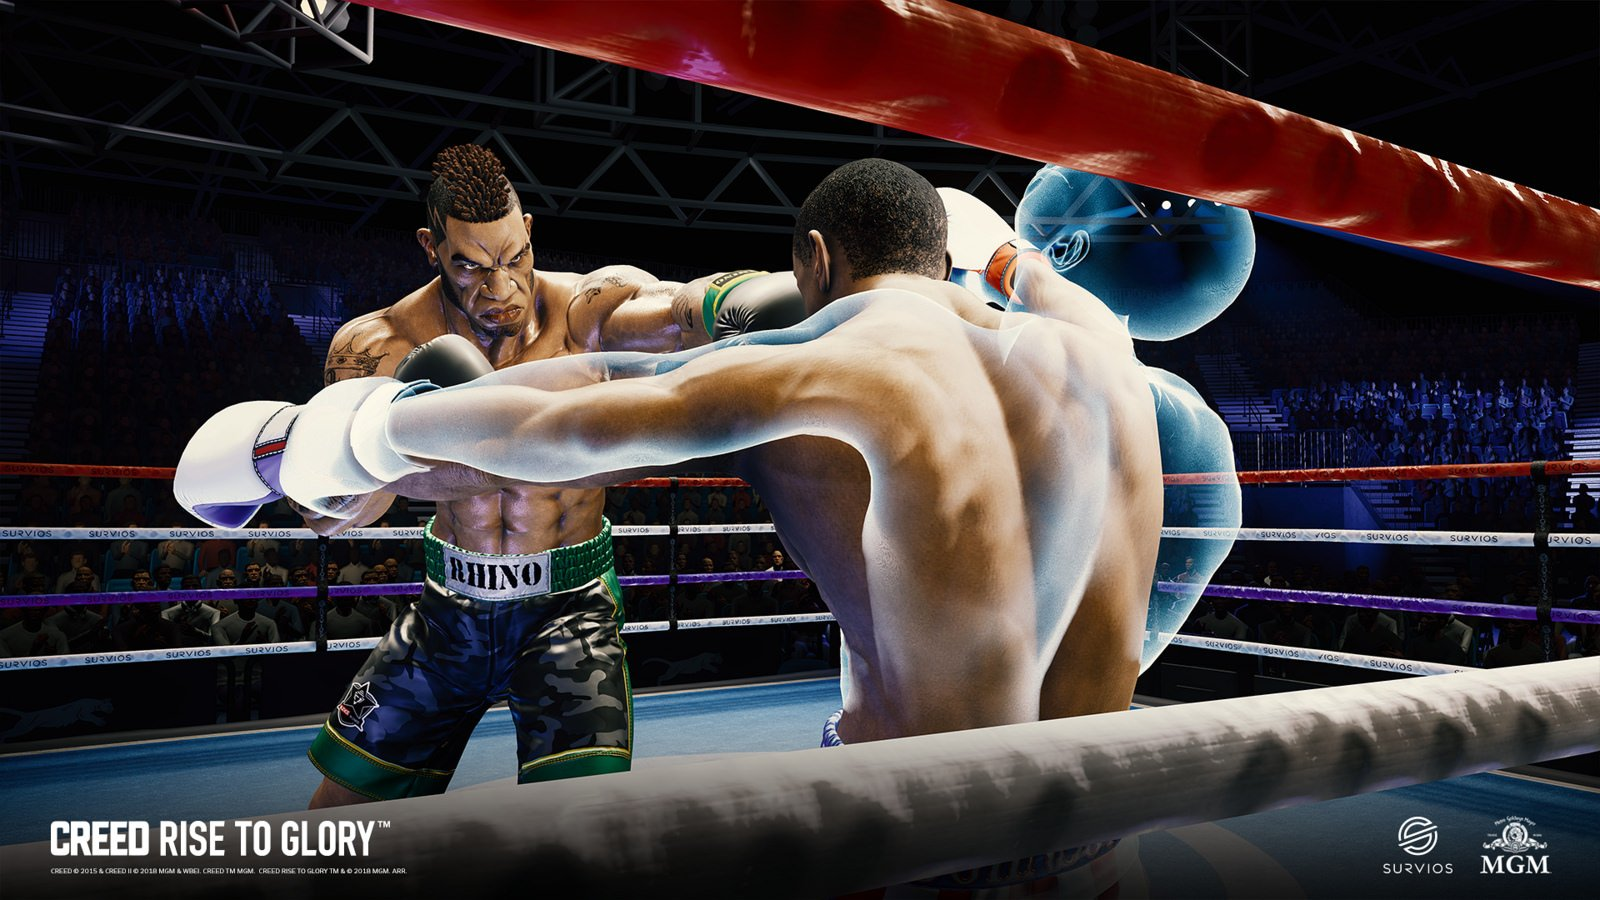 10 tips to take the title in Creed: Rise to Glory, launching next Tuesday for #PSVR �� https://t.co/cLbyOkZaSk https://t.co/wXDGHRuRsL